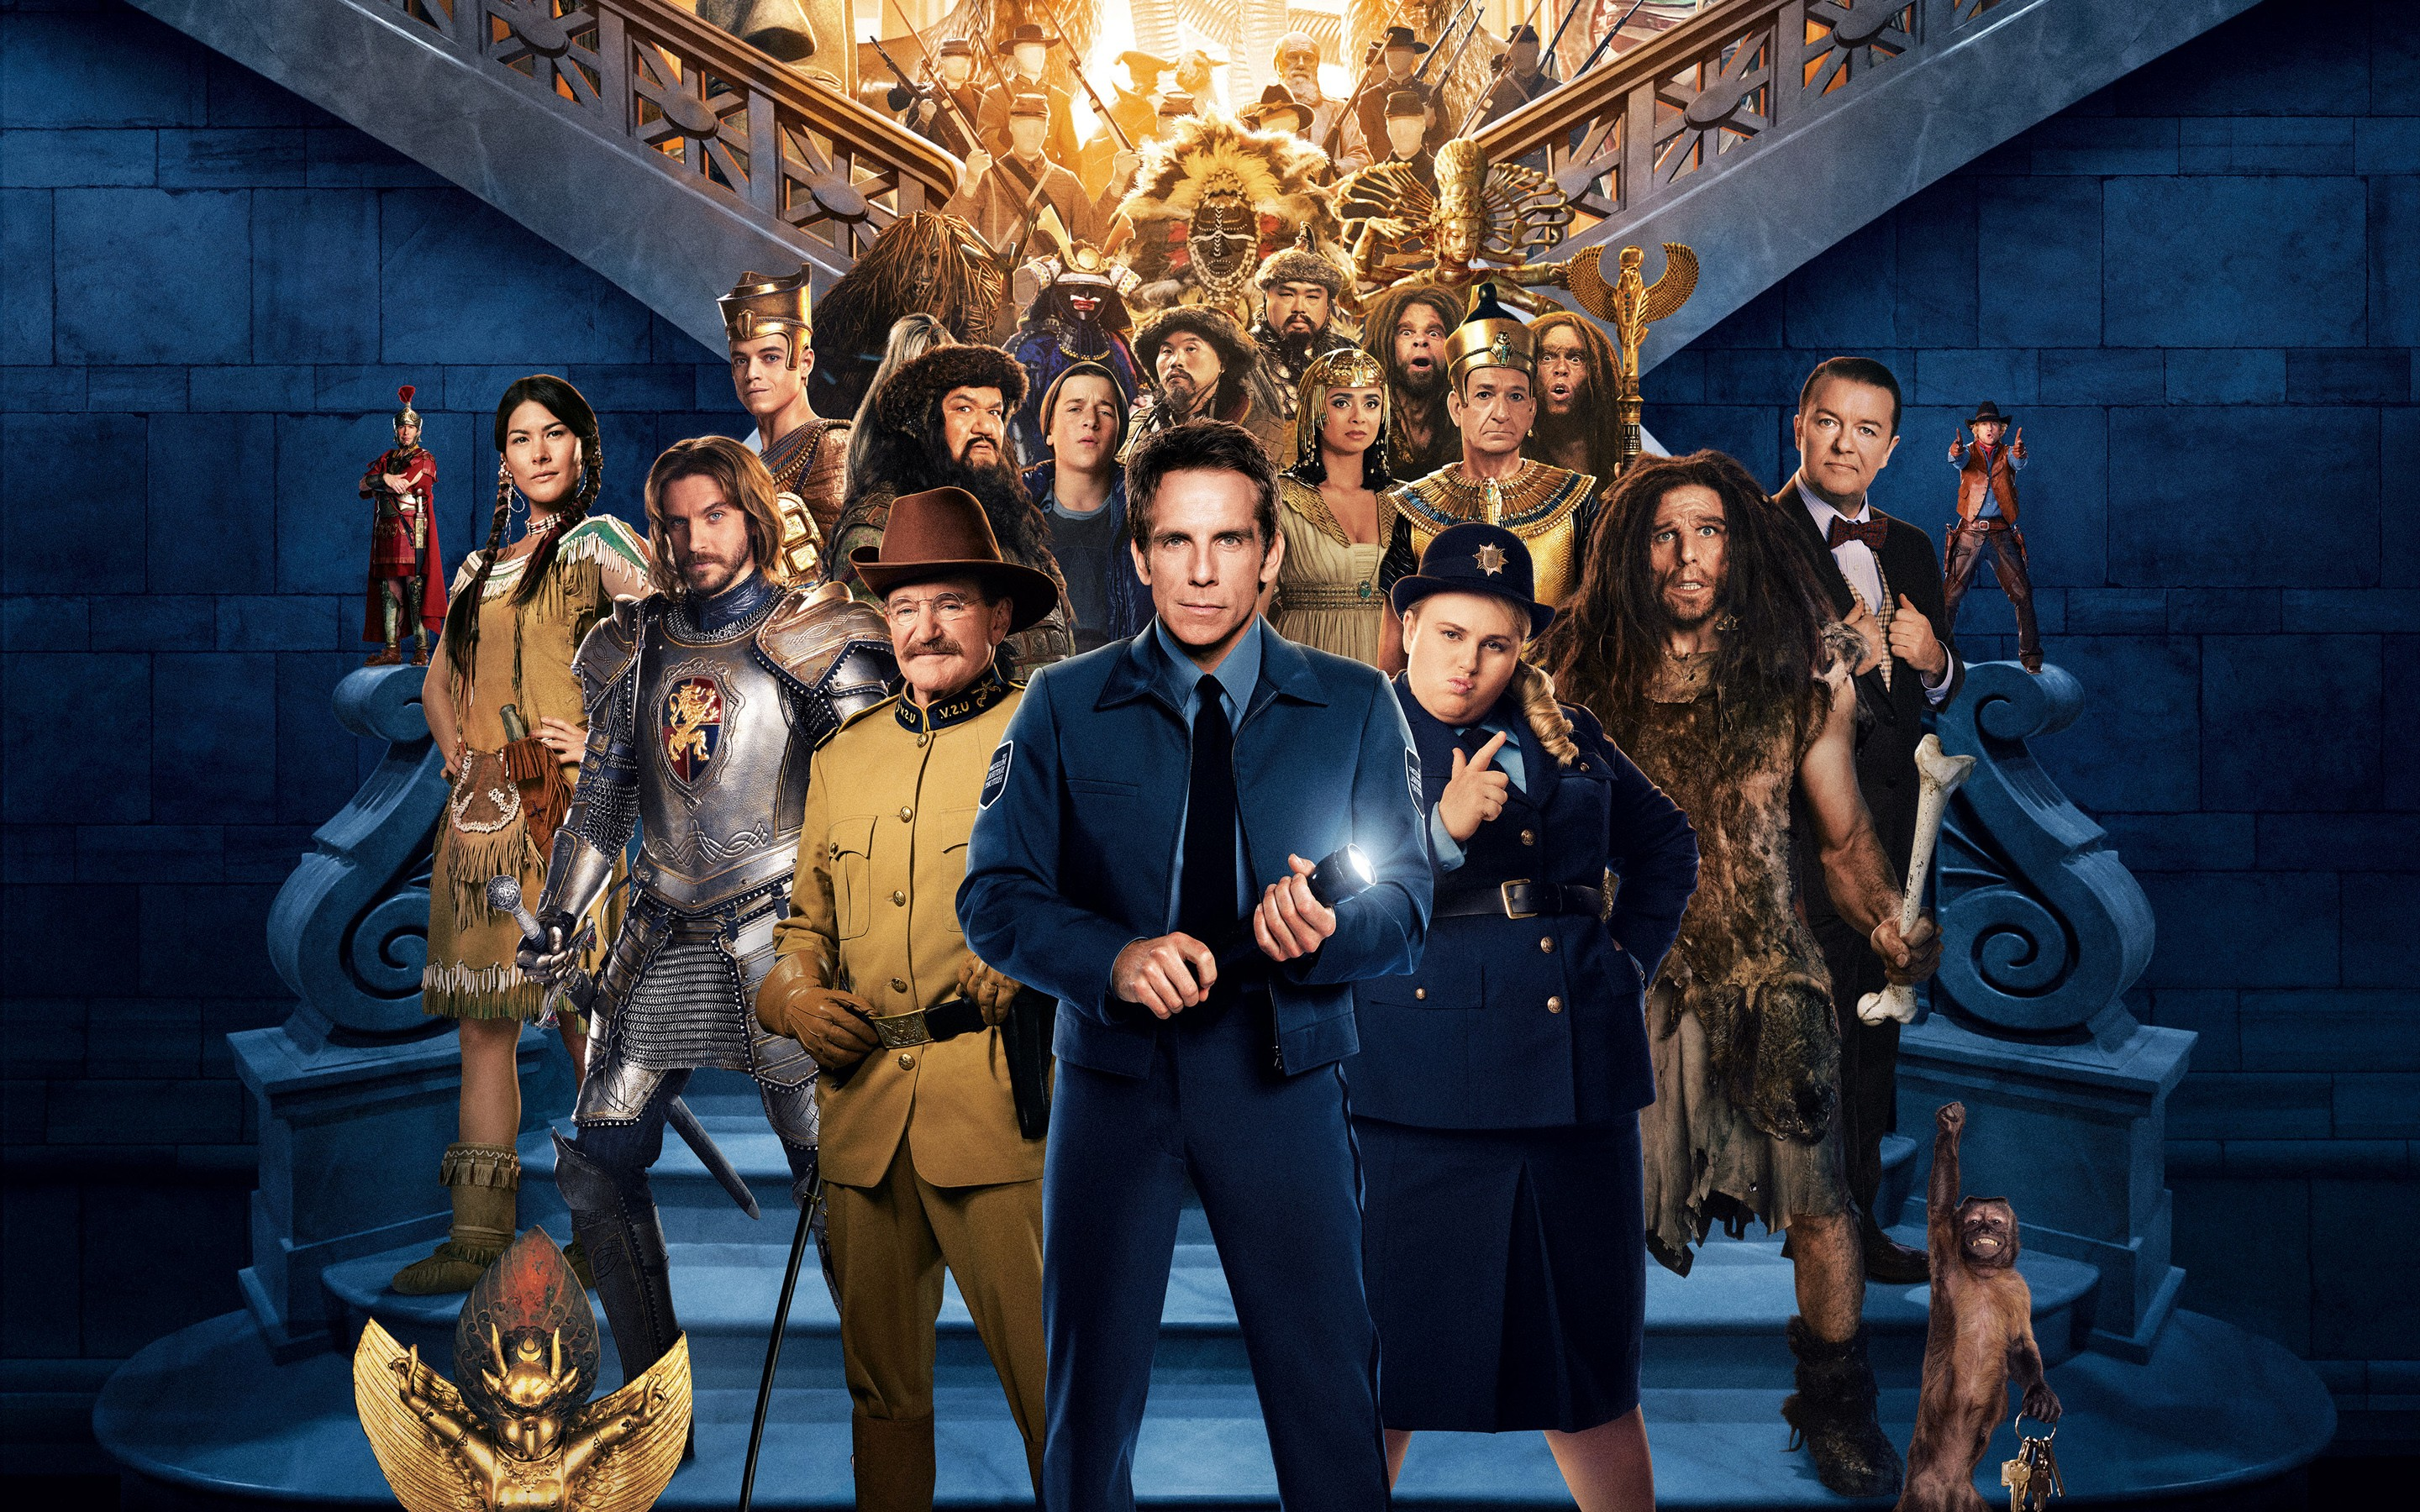 Watch Night at the Museum 2 (2009) Hindi Dubbed Online